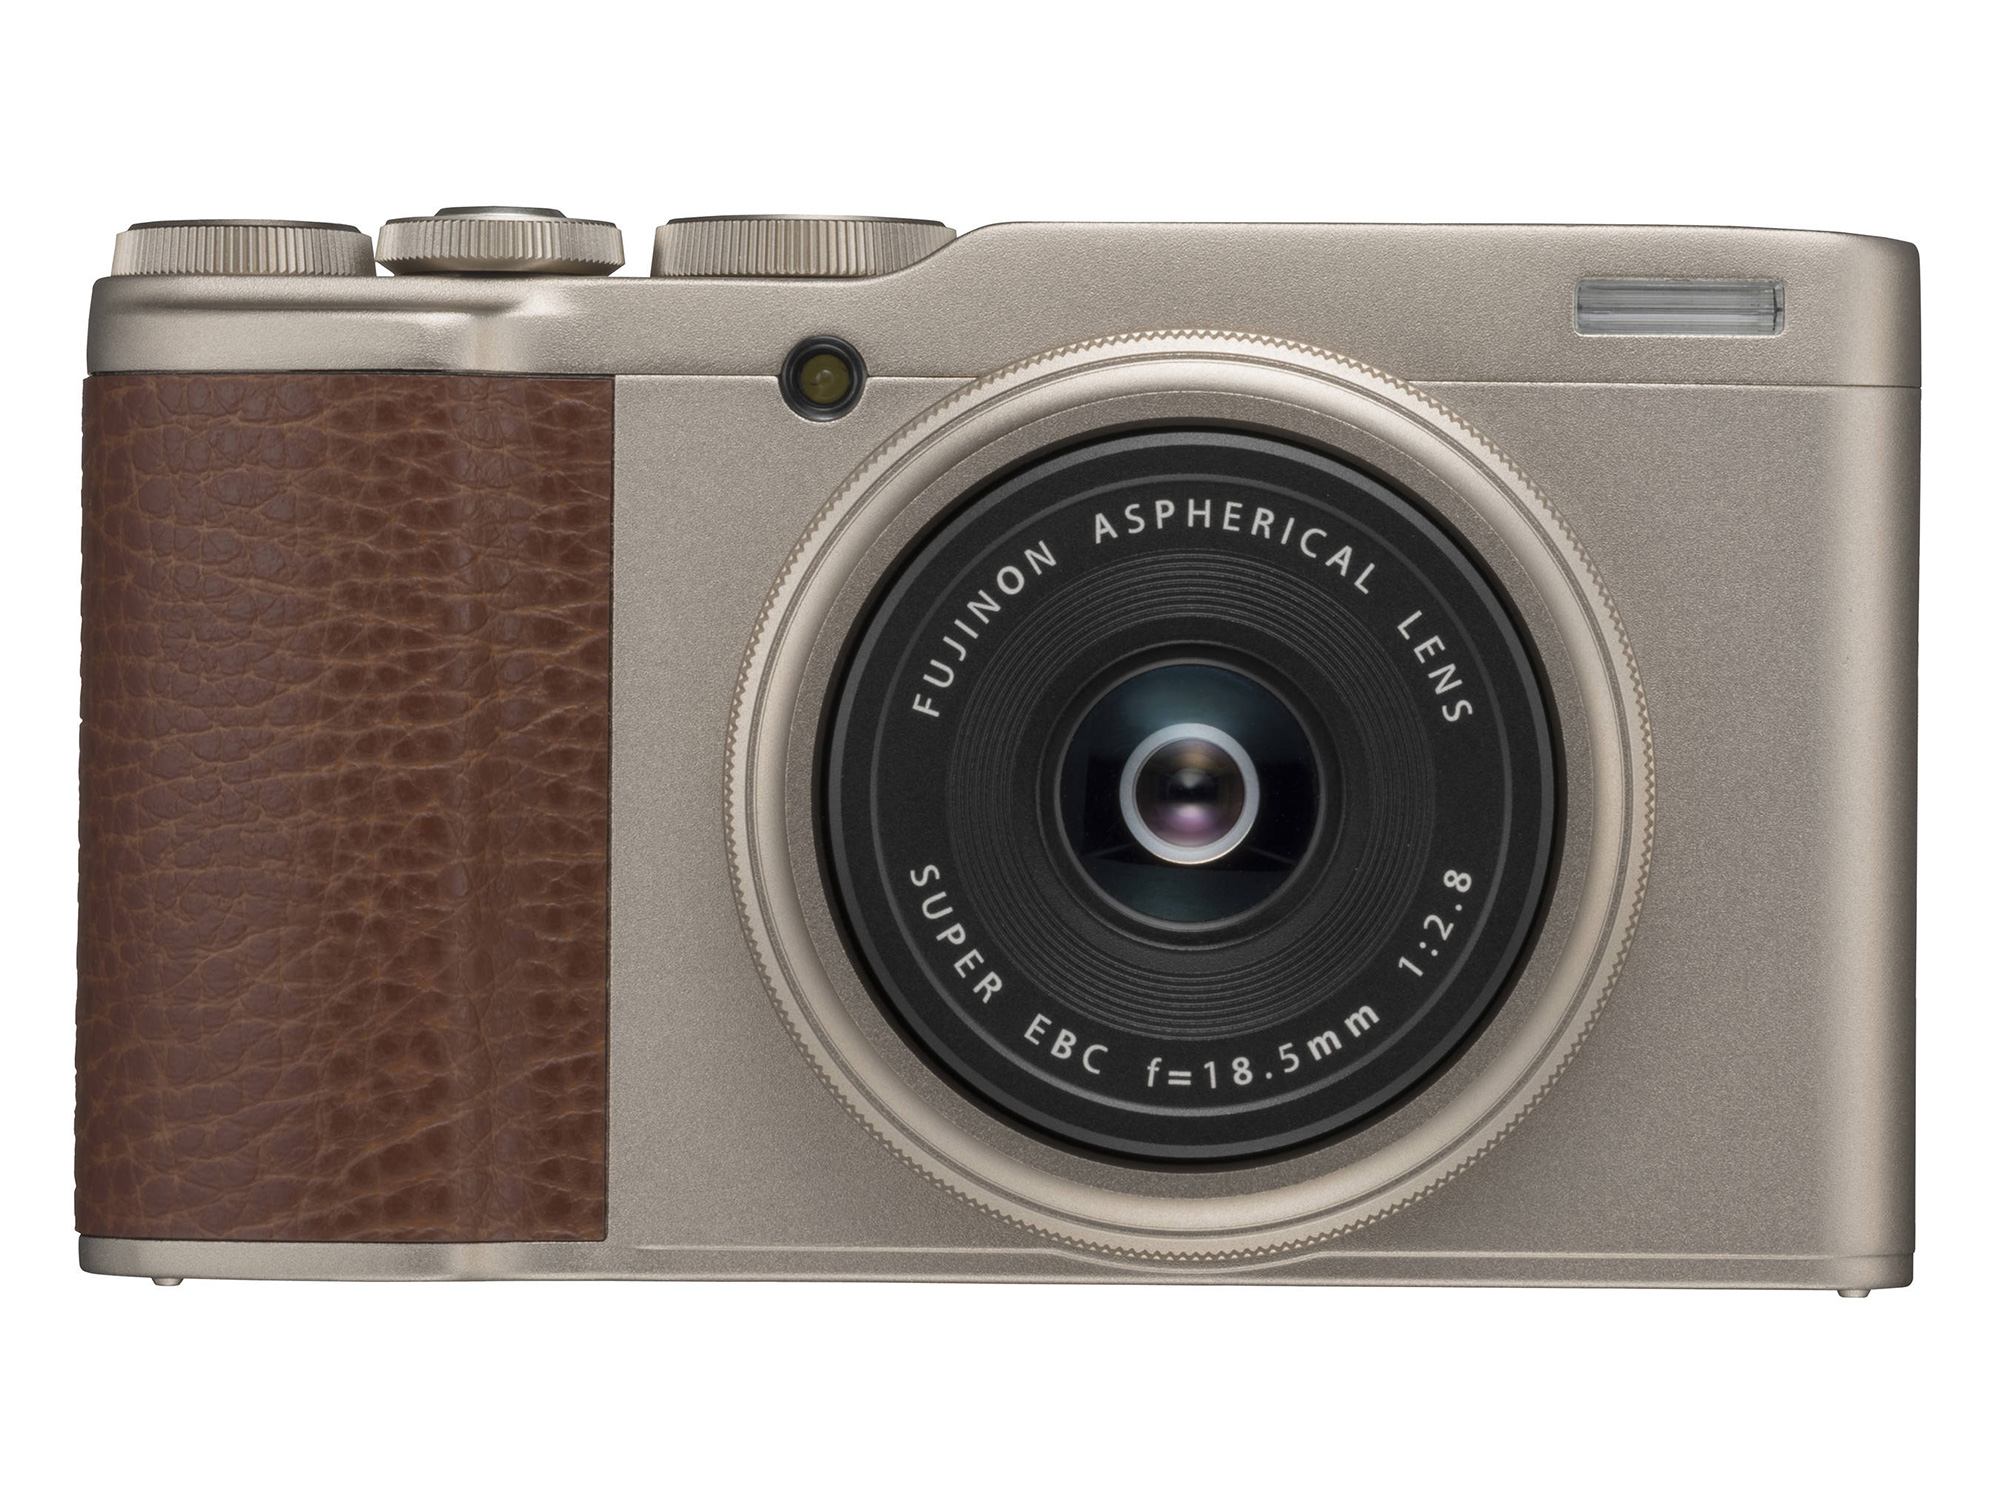 Fujifilm XF10 24.2MP 18.5mm  Digital Camera - Champagne Gold